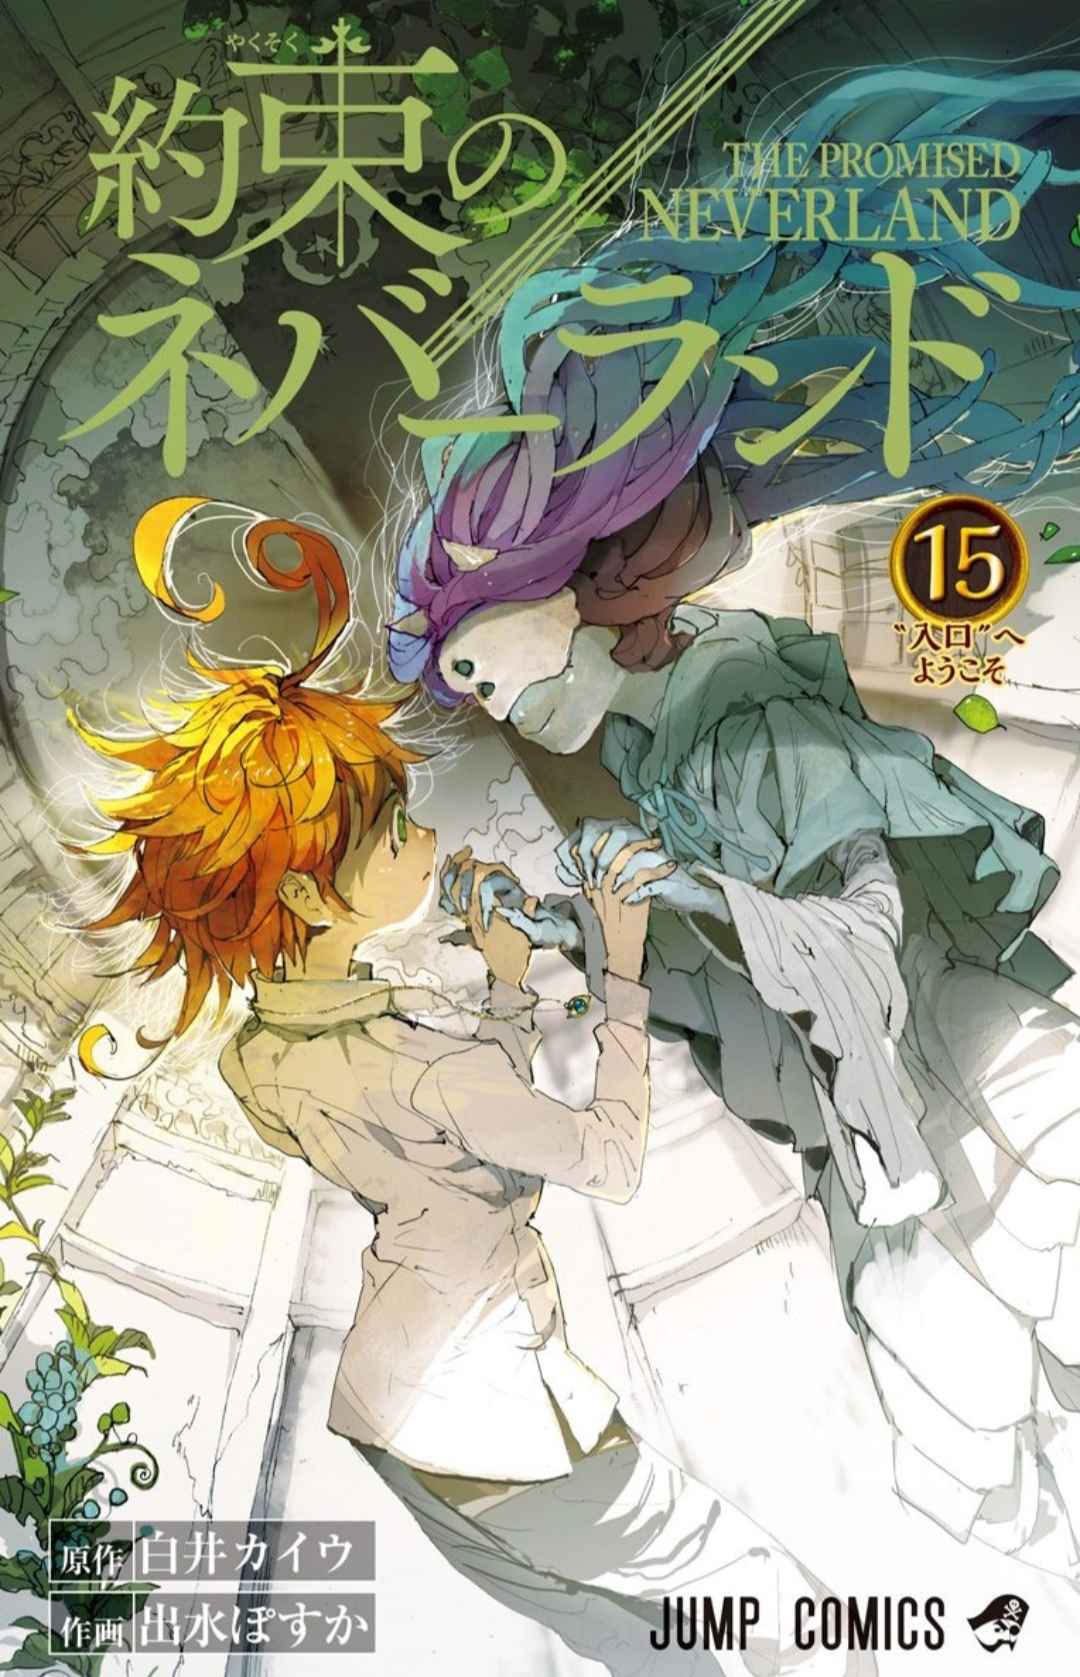 The Promised Neverland Manga Enters 'Climax' of Final Arc